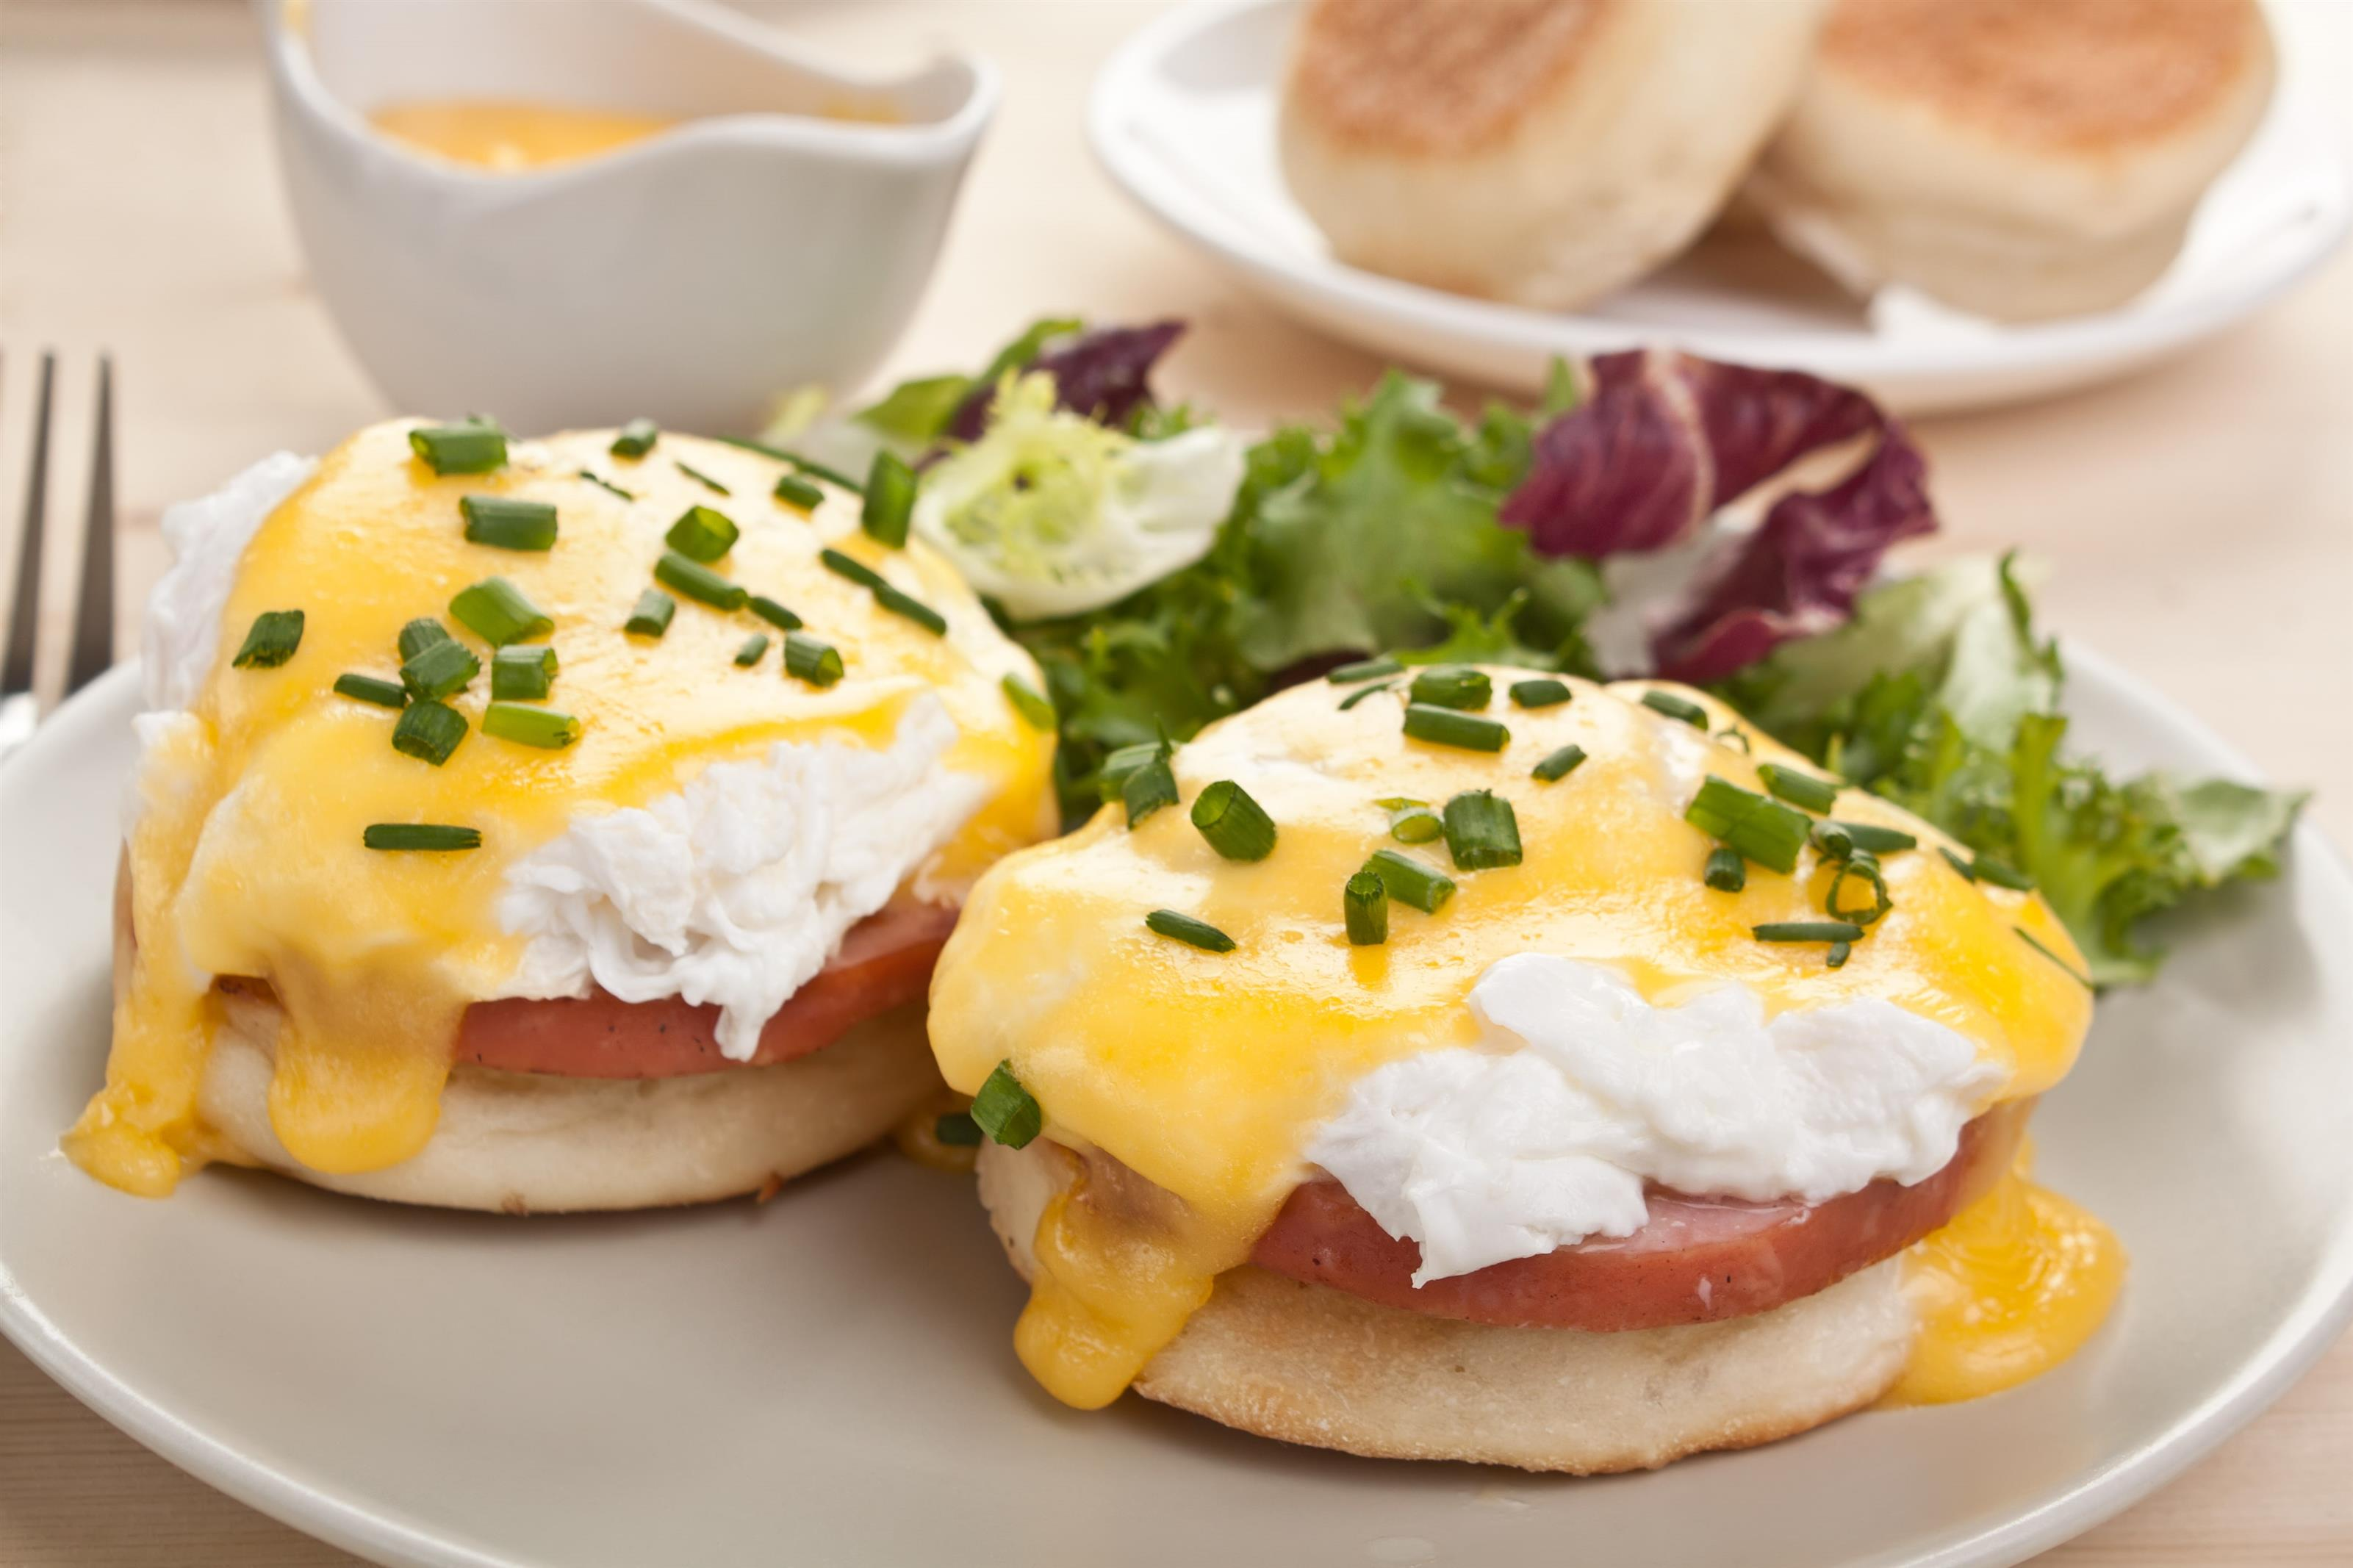 Eggs benedicts on dish with side of lettuce, rolls